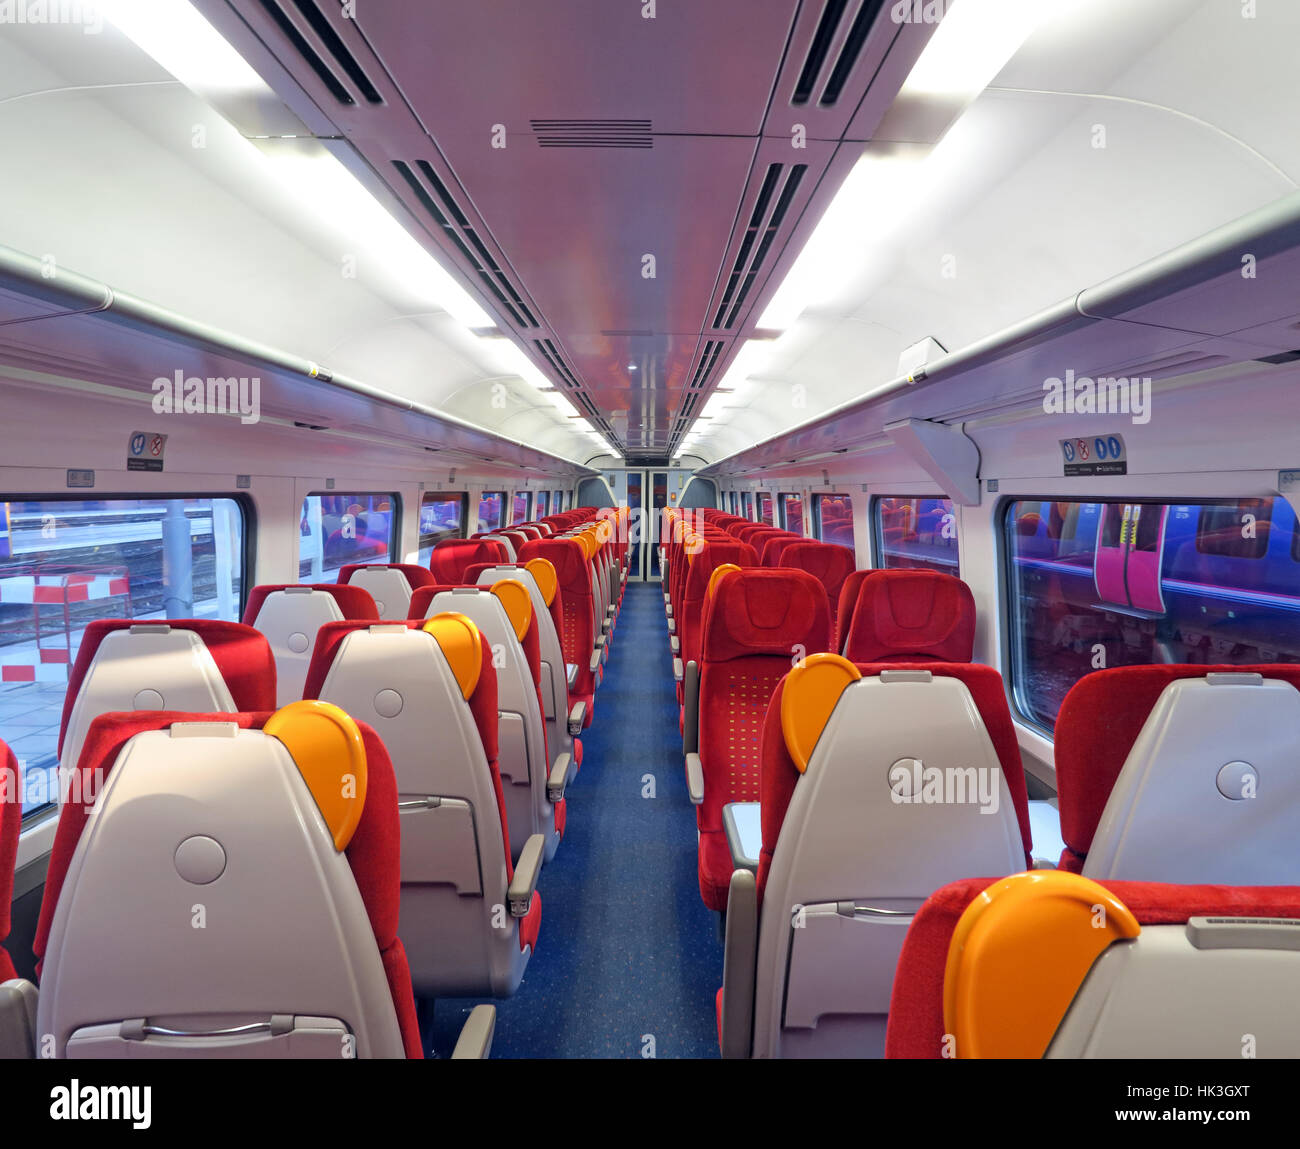 Inside,interior,empty,coach,carriage,seat,red,orange,seats,TOC,train,operating,company,cheap,night,dusk,evening,standard,first,class,herd,Expensive,ticket,price,prices,UK,east,midlands,train,trains,train operating Company,Standard Class,Goat Class,ticket prices,GoTonySmith,@HotpixUK,Tony,Smith,UK,GB,Great,Britain,United,Kingdom,English,British,England,problem,with,problem with,issue with,Buy Pictures of,Buy Images Of,Images of,Stock Images,Tony Smith,United Kingdom,Great Britain,British Isles